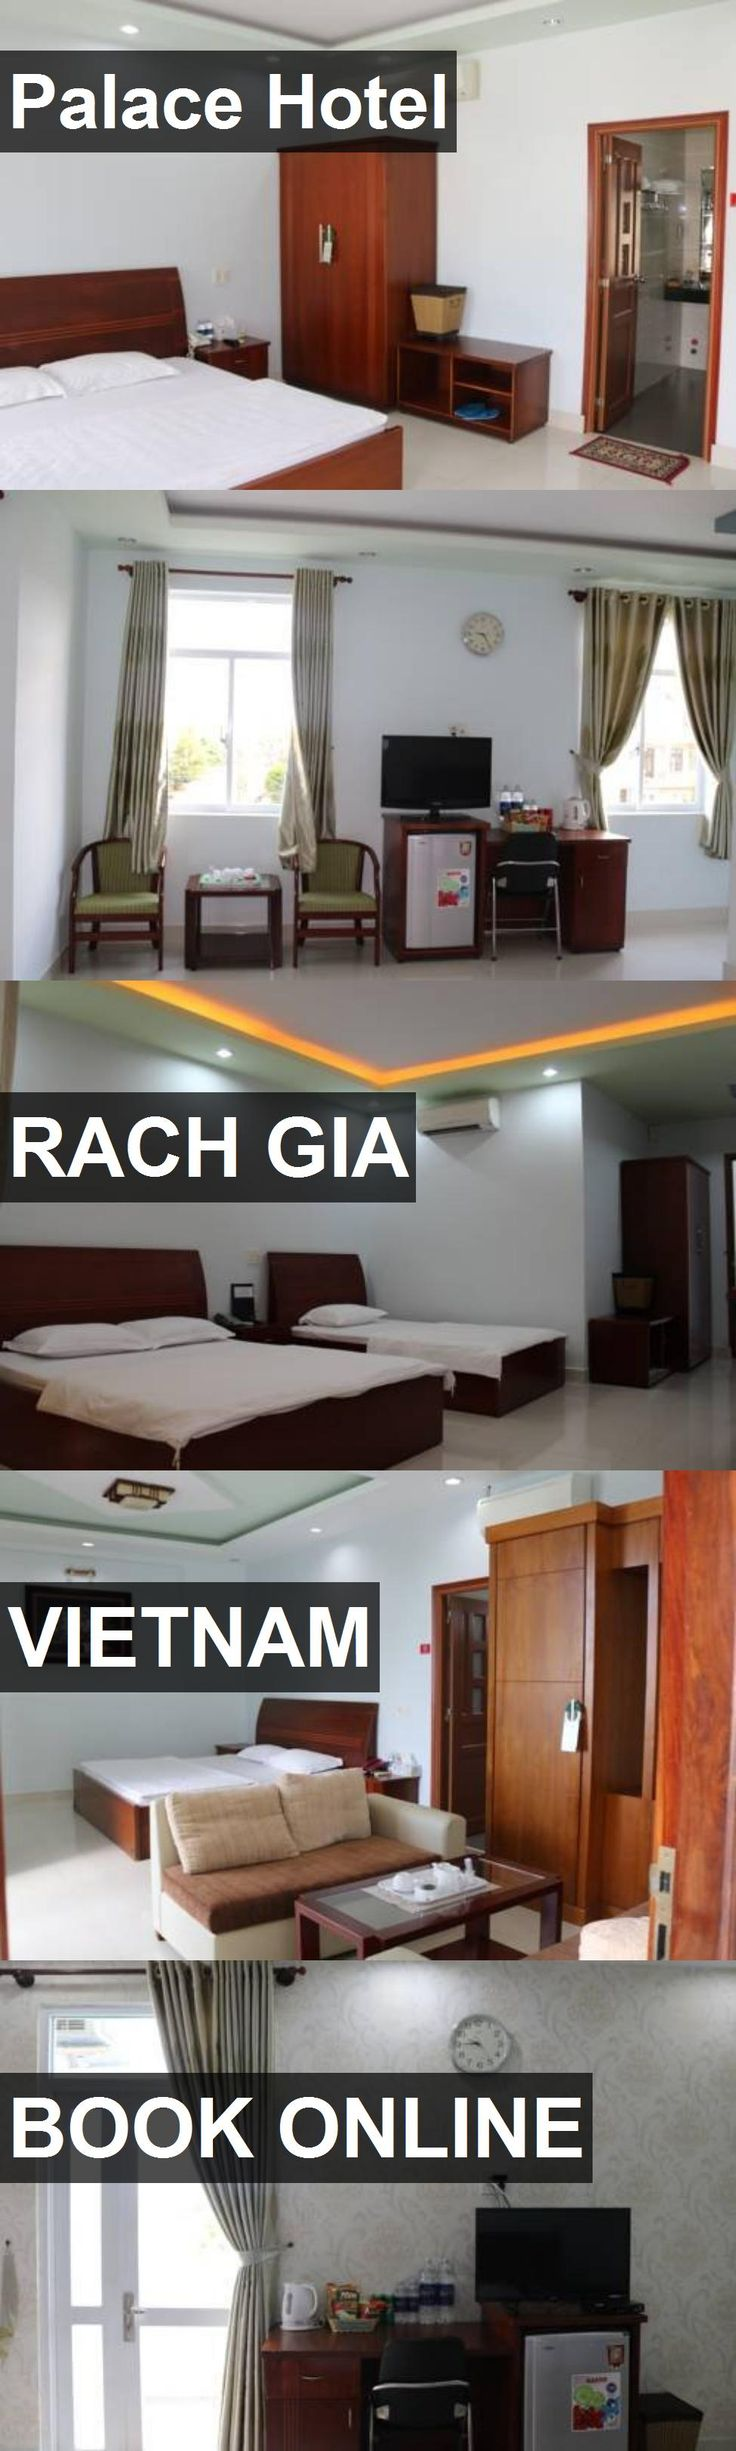 Palace Hotel in Rach Gia, Vietnam. For more information, photos, reviews and best prices please follow the link. #Vietnam #RachGia #travel #vacation #hotel